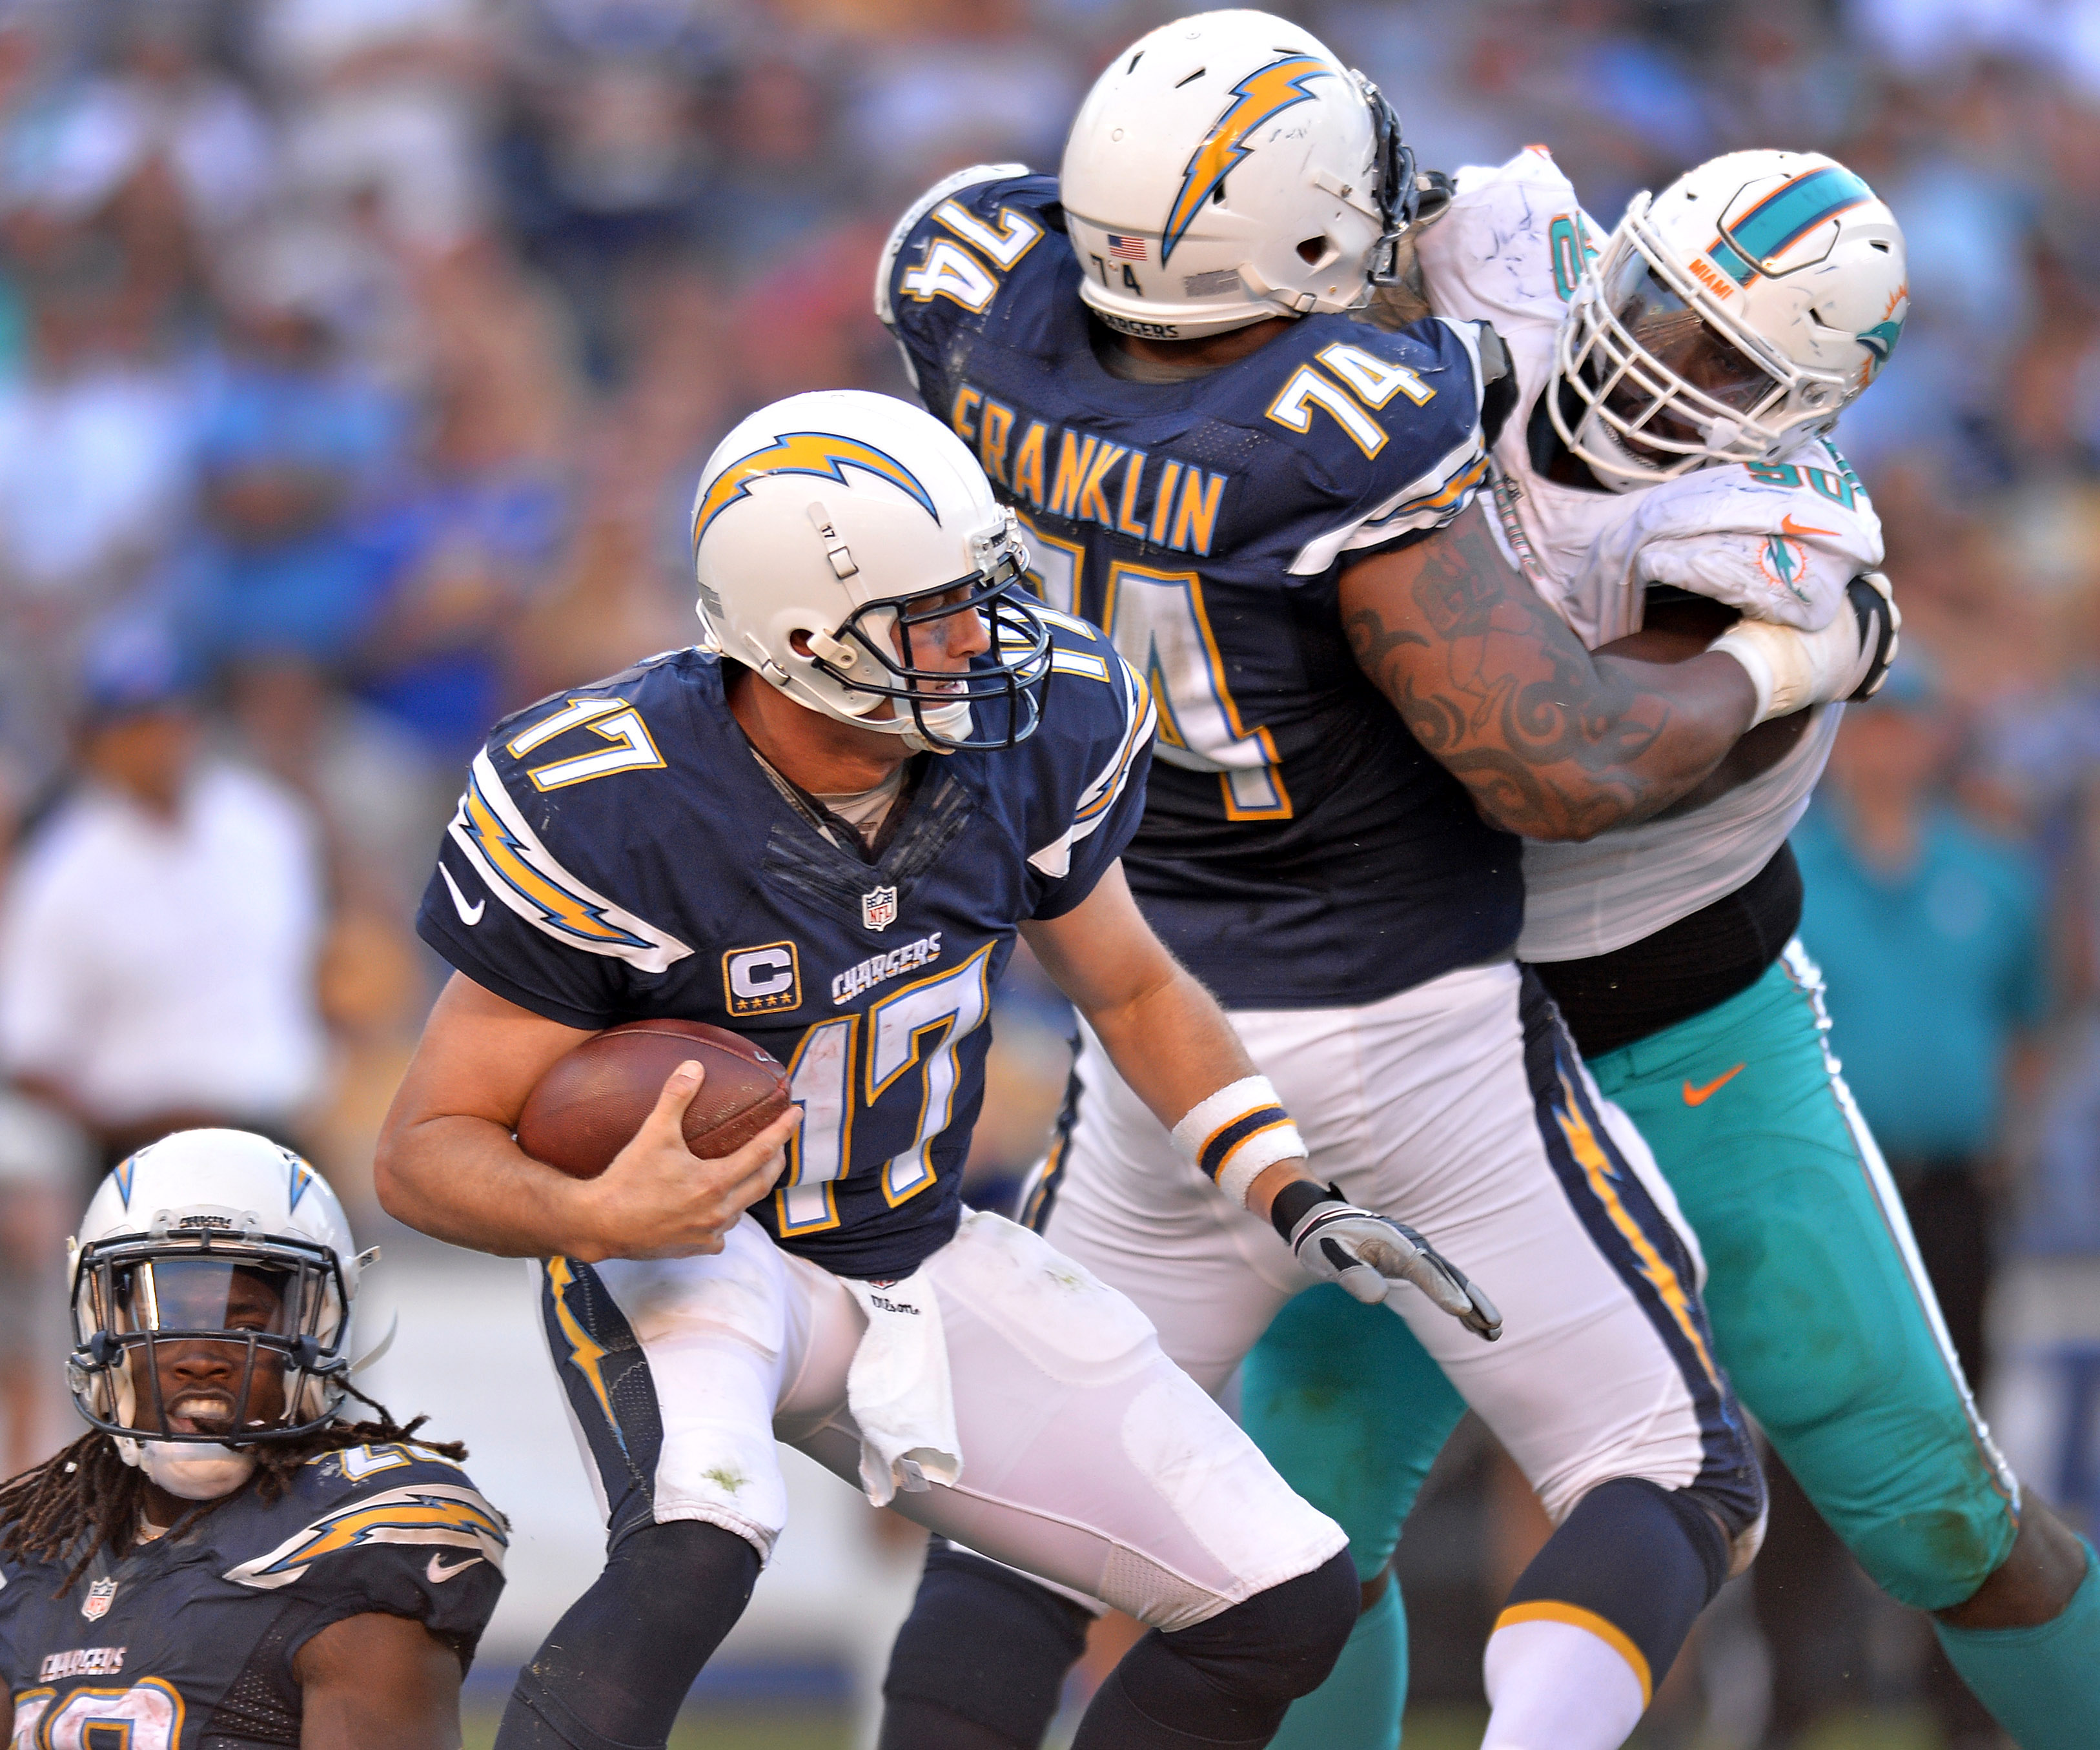 San Diego Chargers Draft Picks: Bolts From The Blue